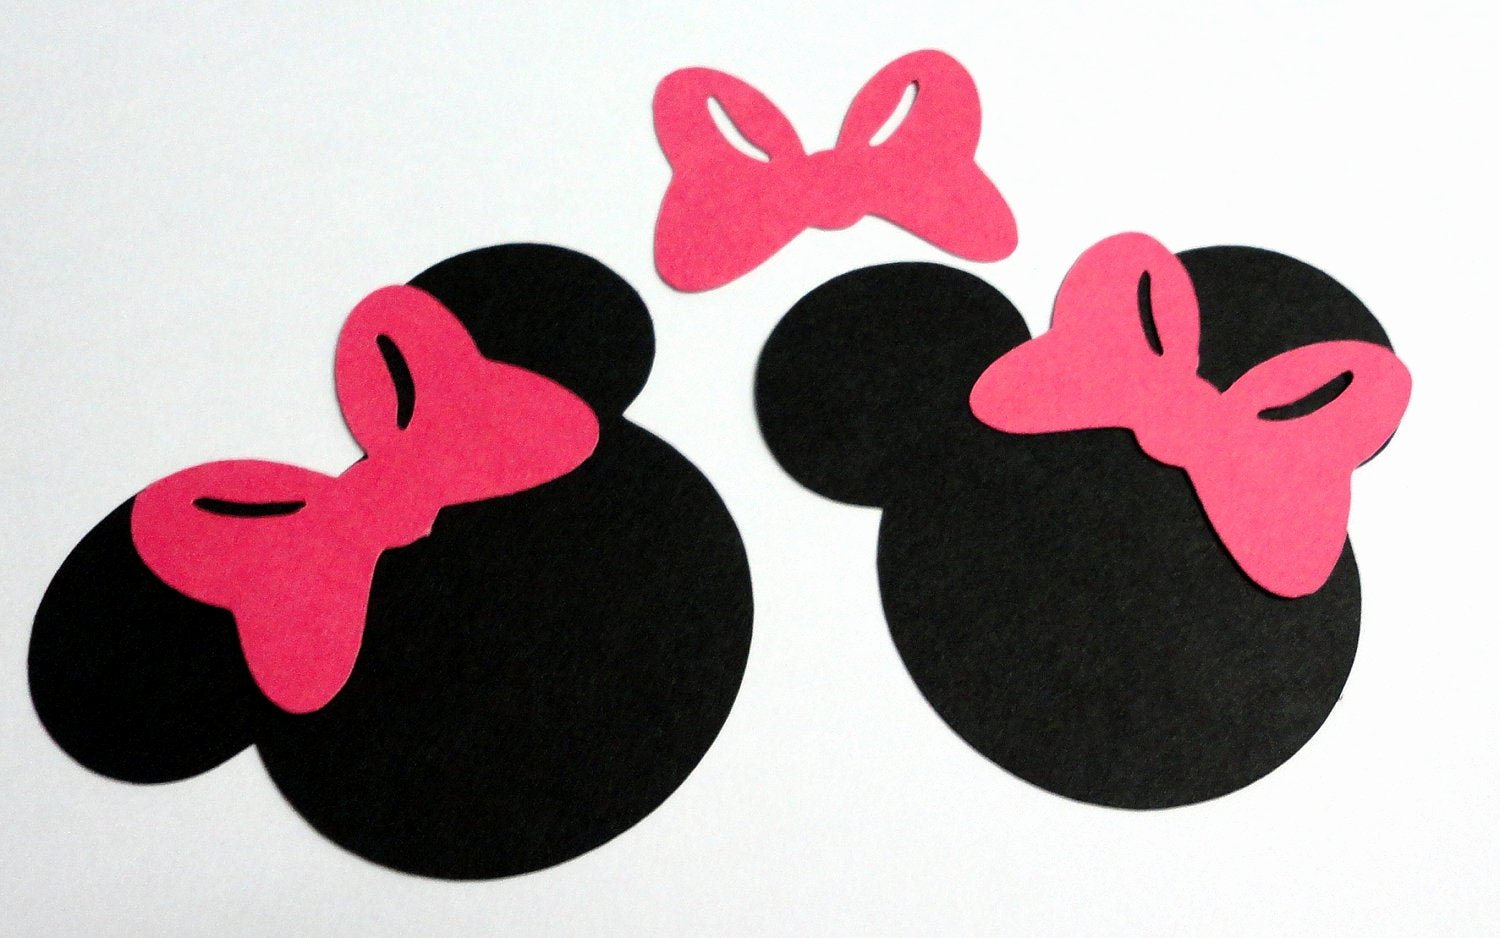 Mickey Mouse Head Cutout Template Fresh 30 2 5 Minnie Mouse Head Silhouettes Black Cutouts